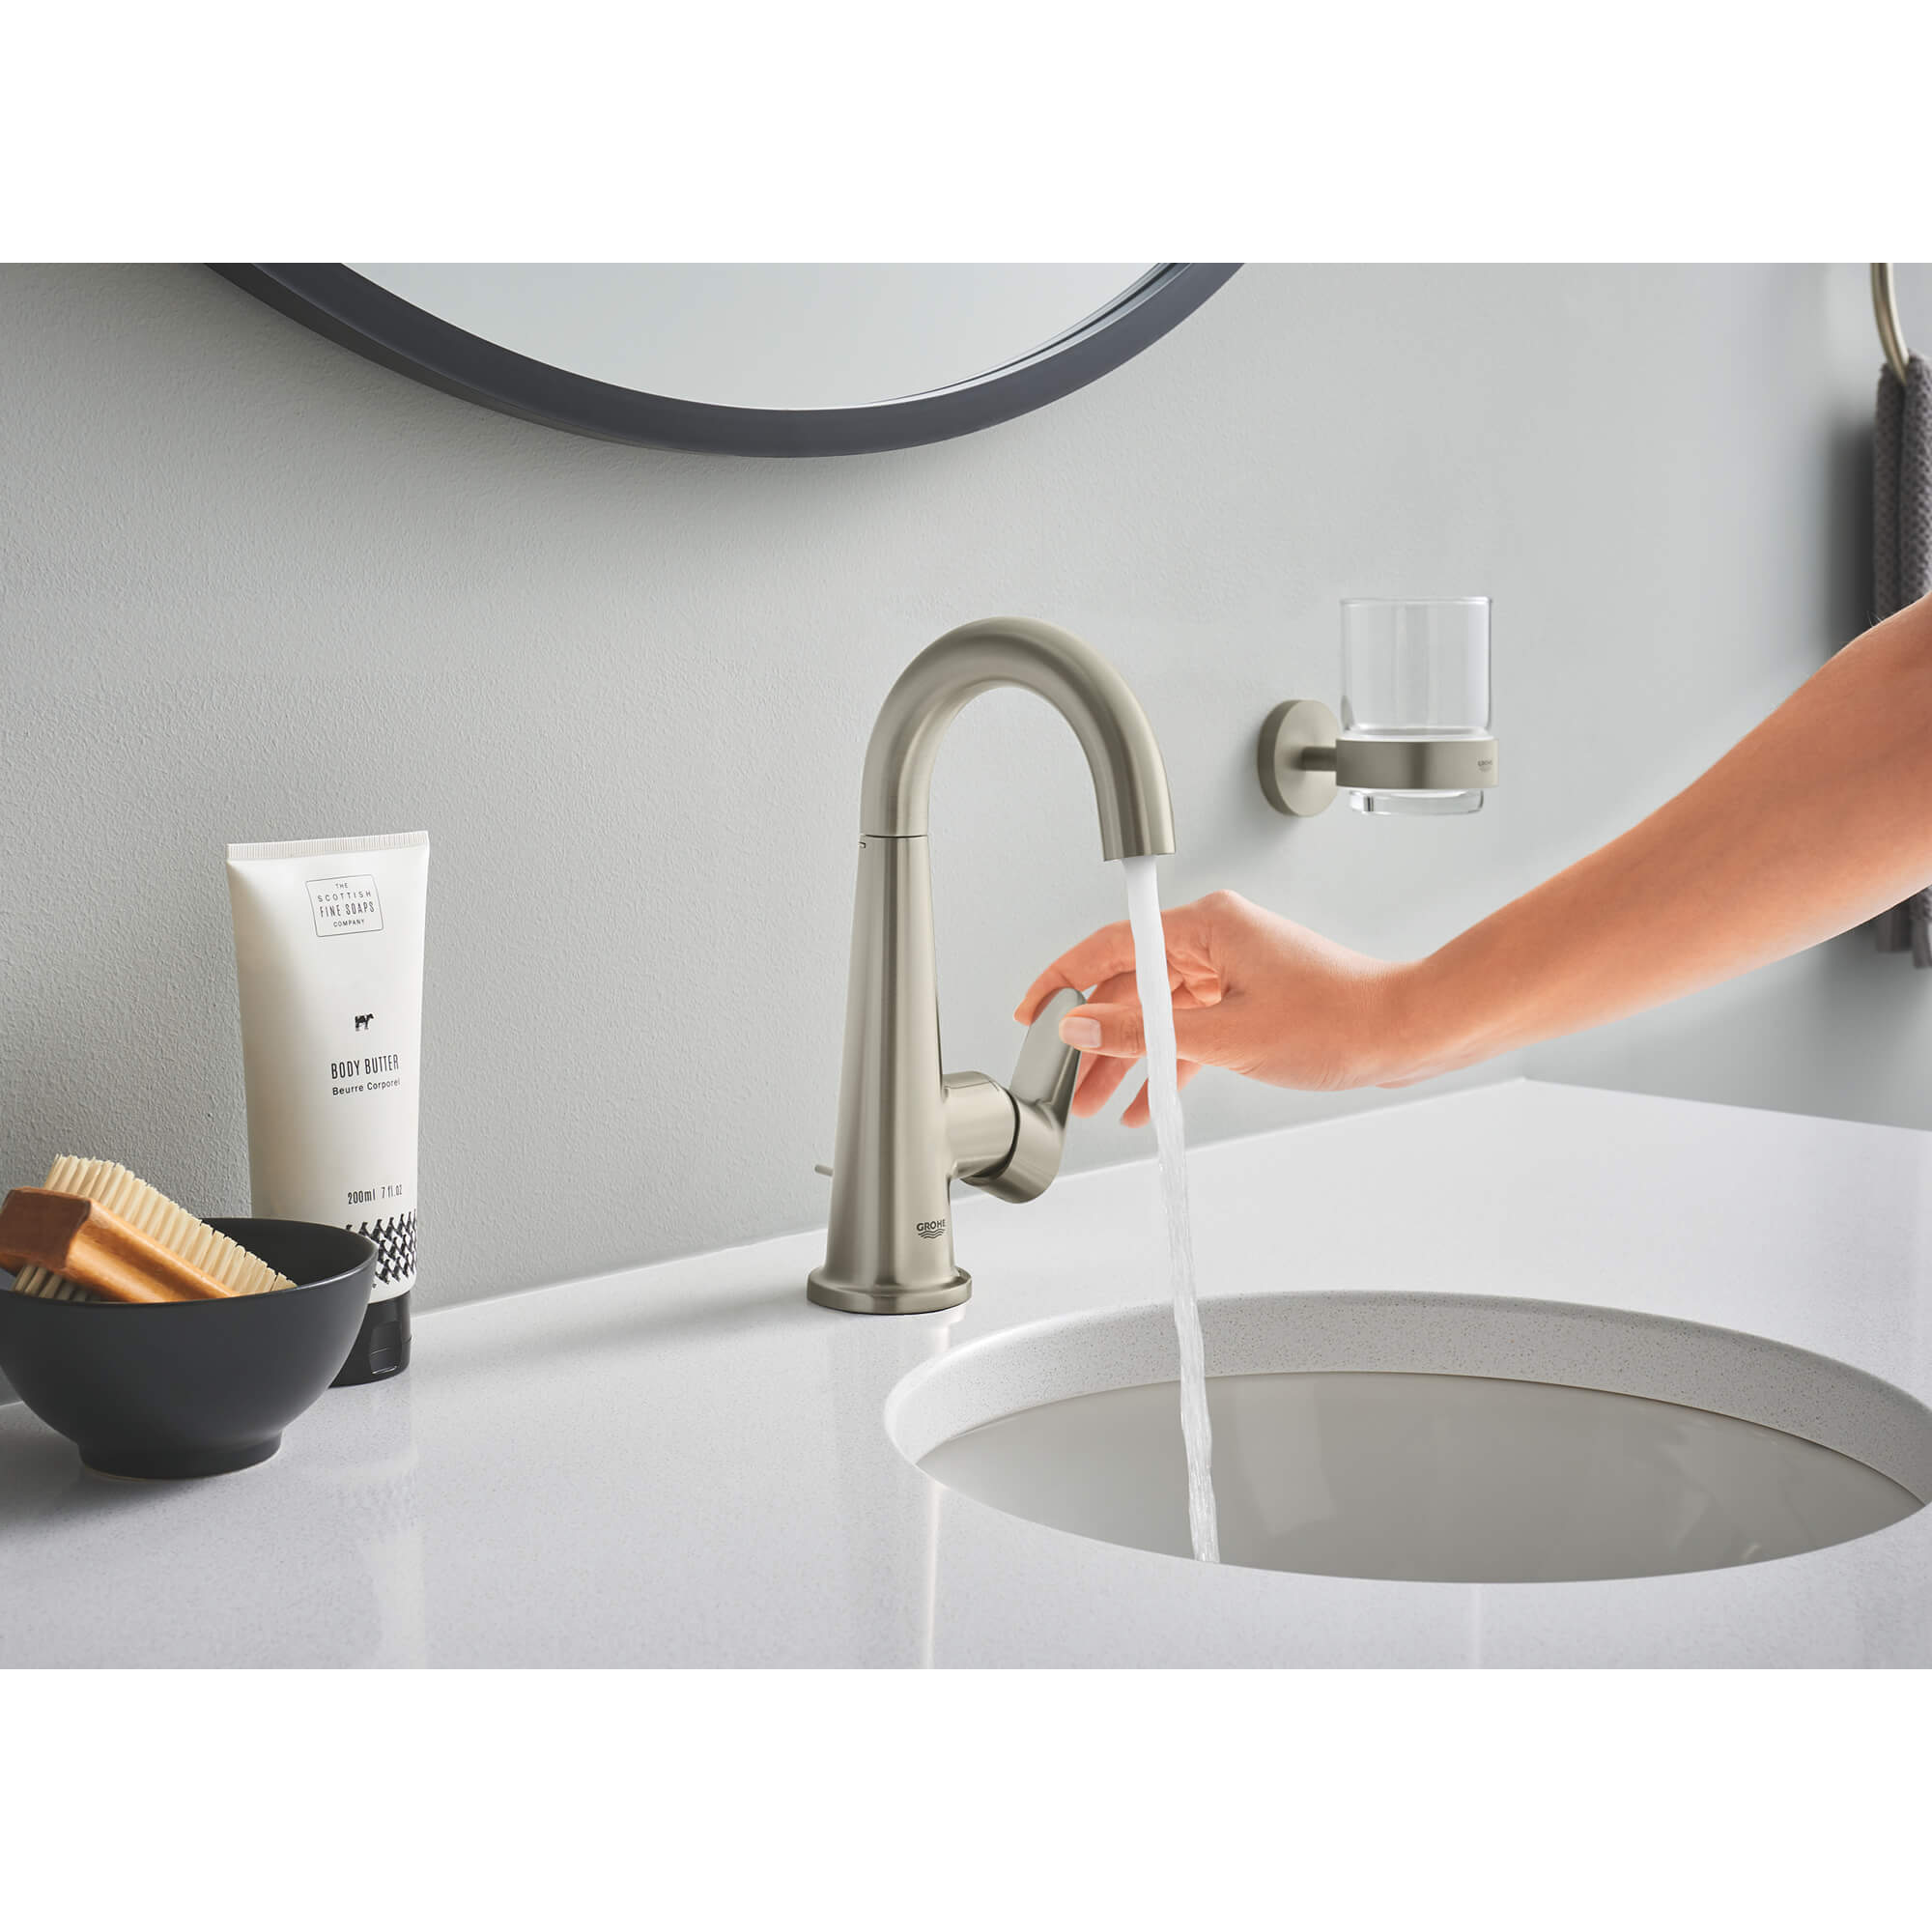 Glass with Holder GROHE BRUSHED NICKEL